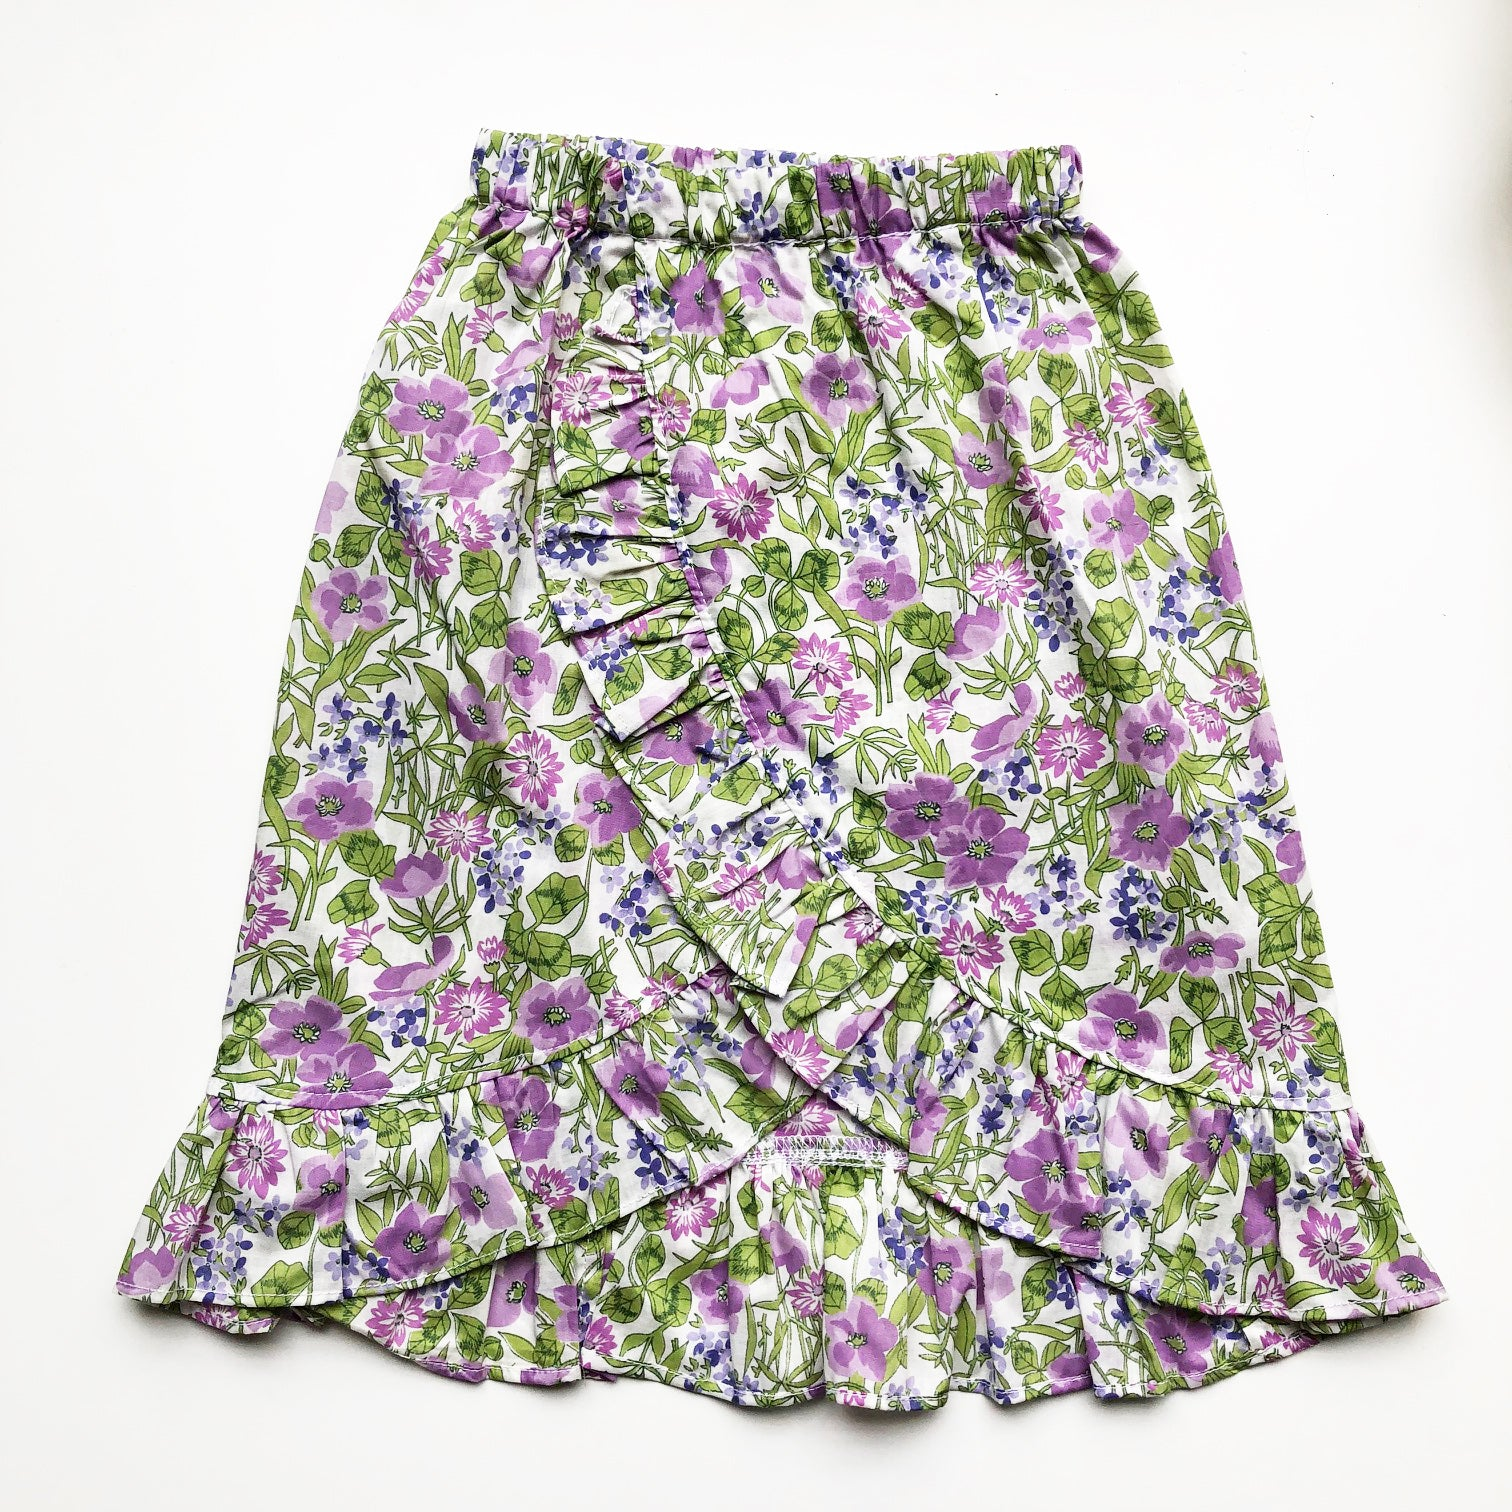 Sara Re-purposed Ruffle Skirt In Lilac Liberty print size 2